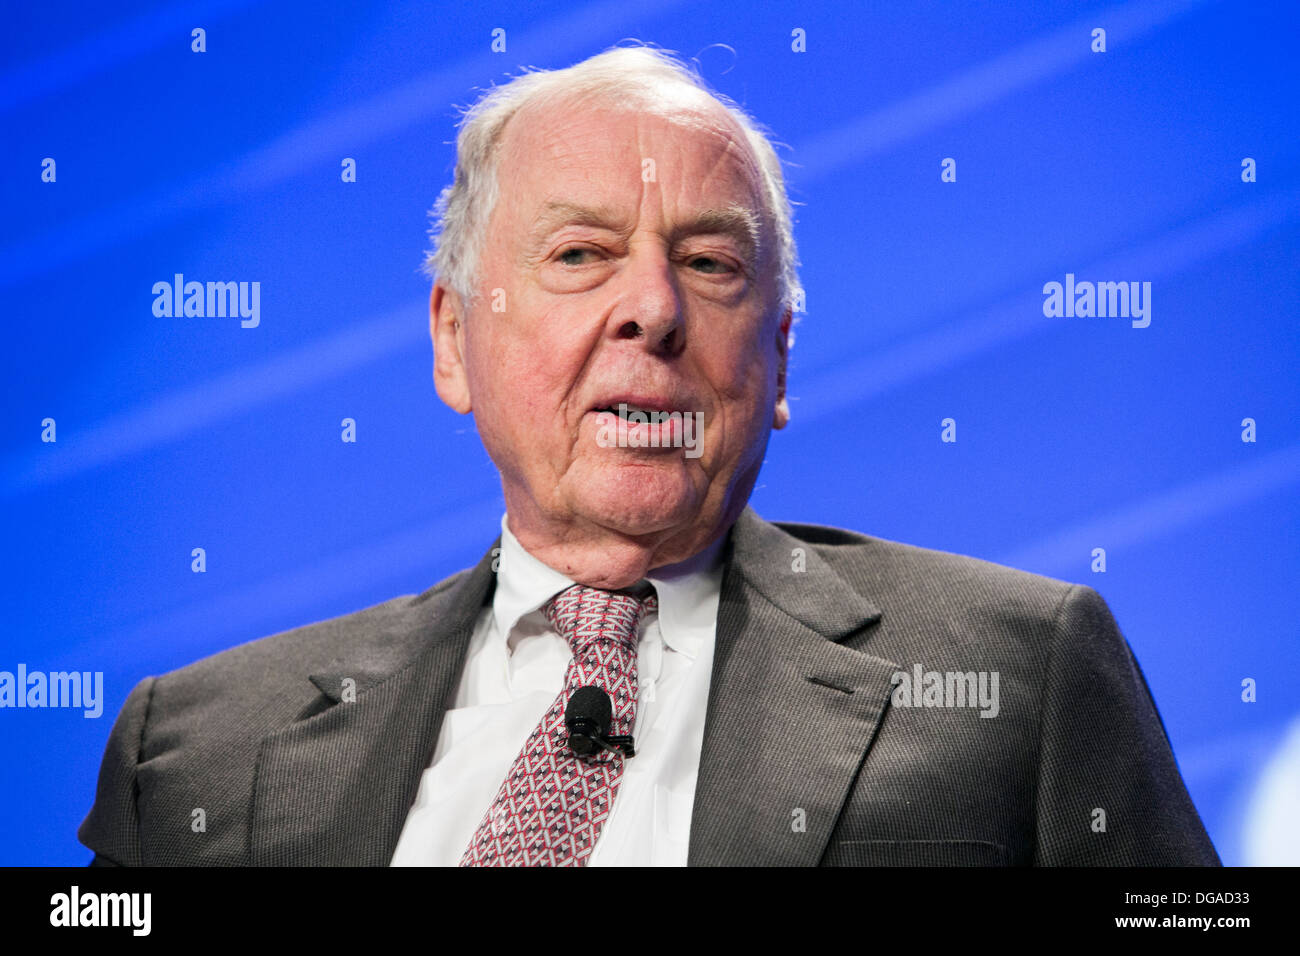 T. Boone Pickens, Chairman of BP Capital Management. - Stock Image